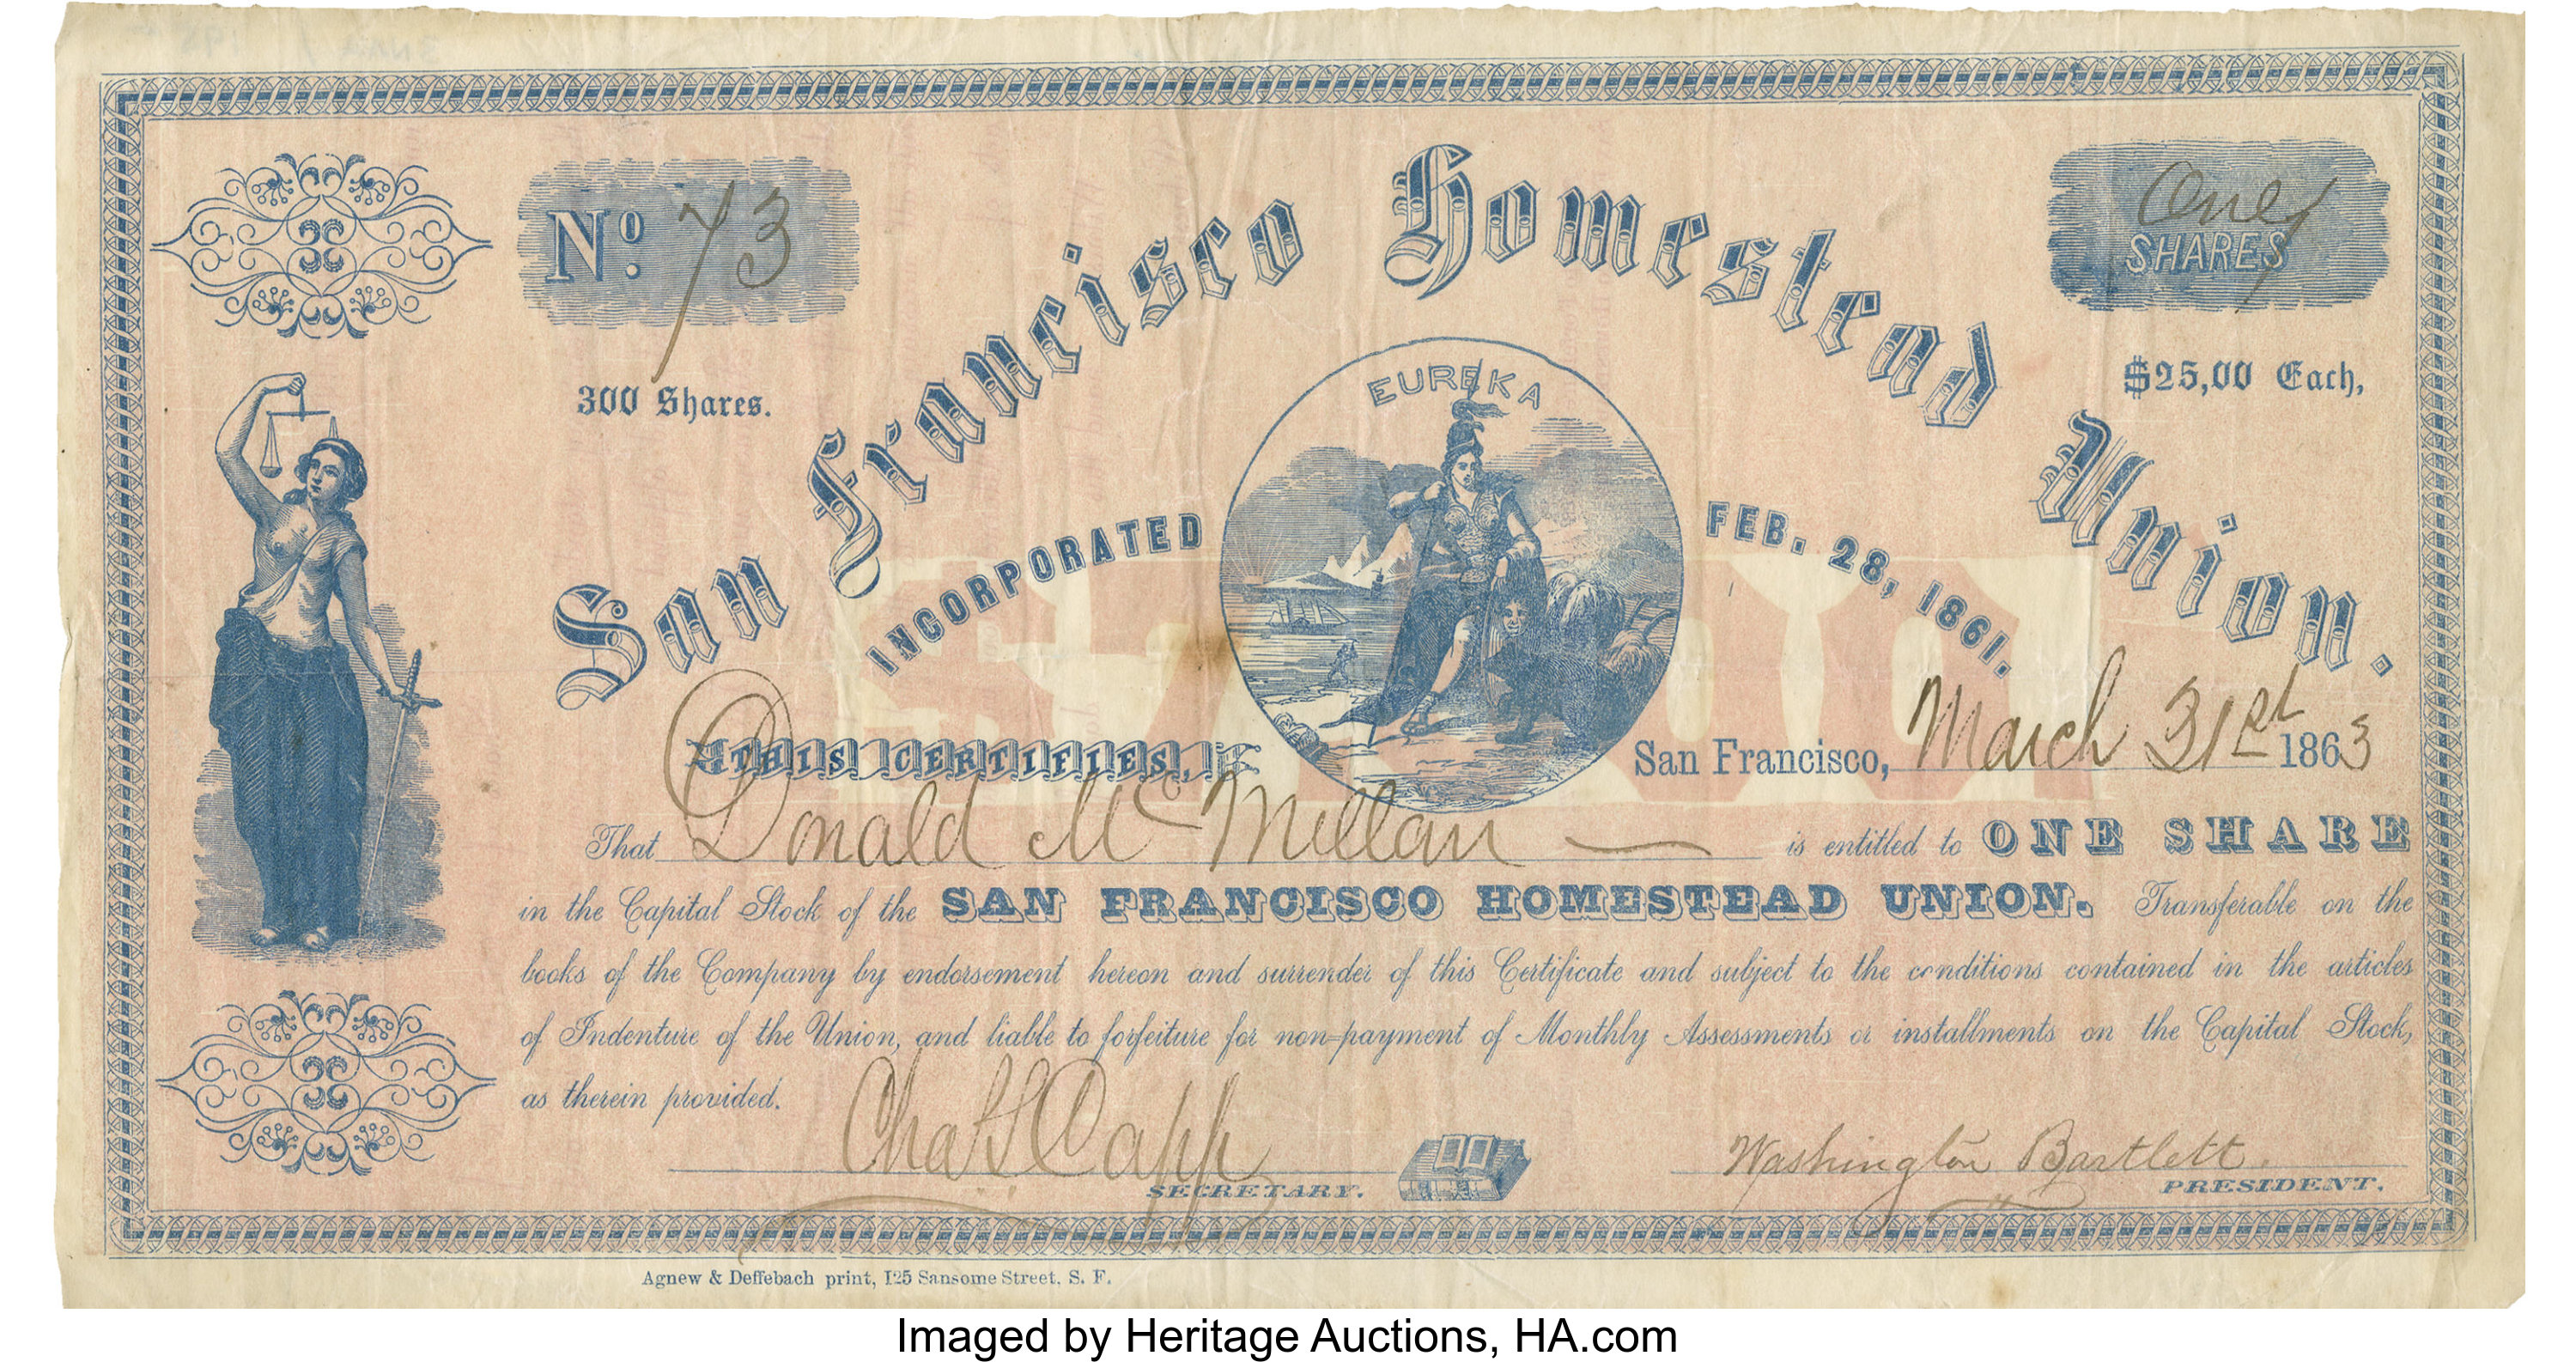 1863 San Francisco Homestead Union Stock Certificate Signed by ...